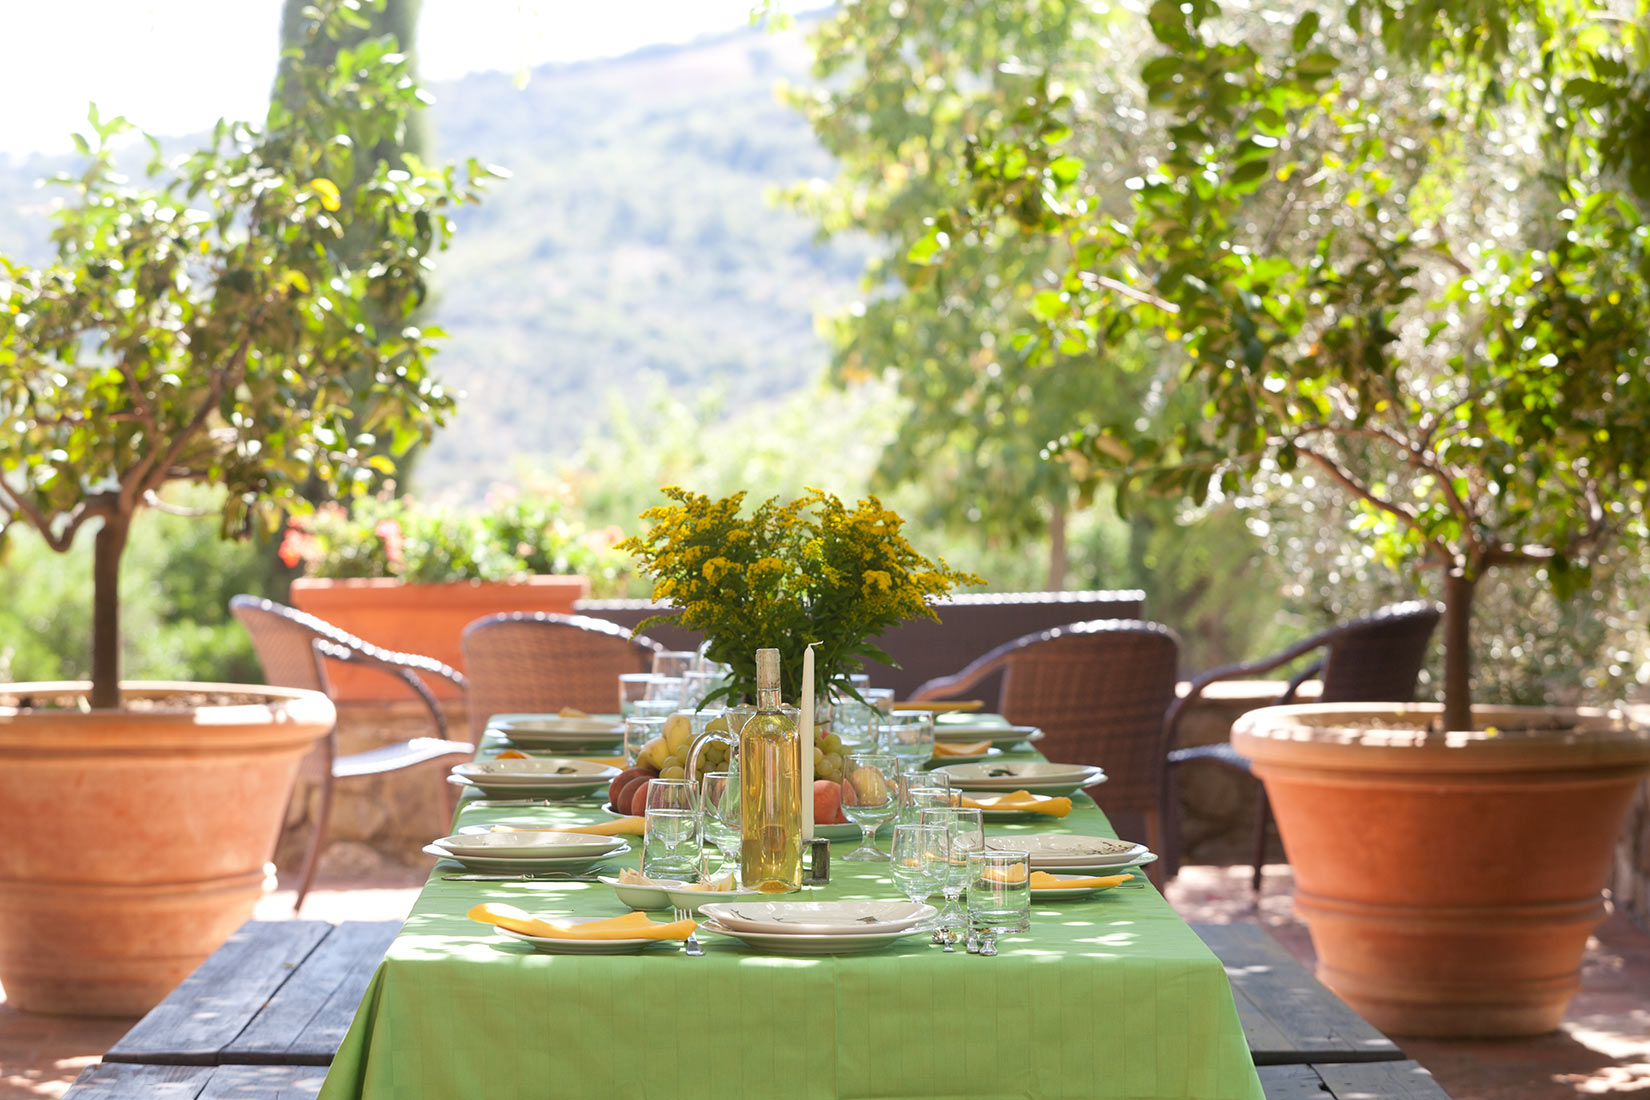 Eating-al-fresco-tuscany